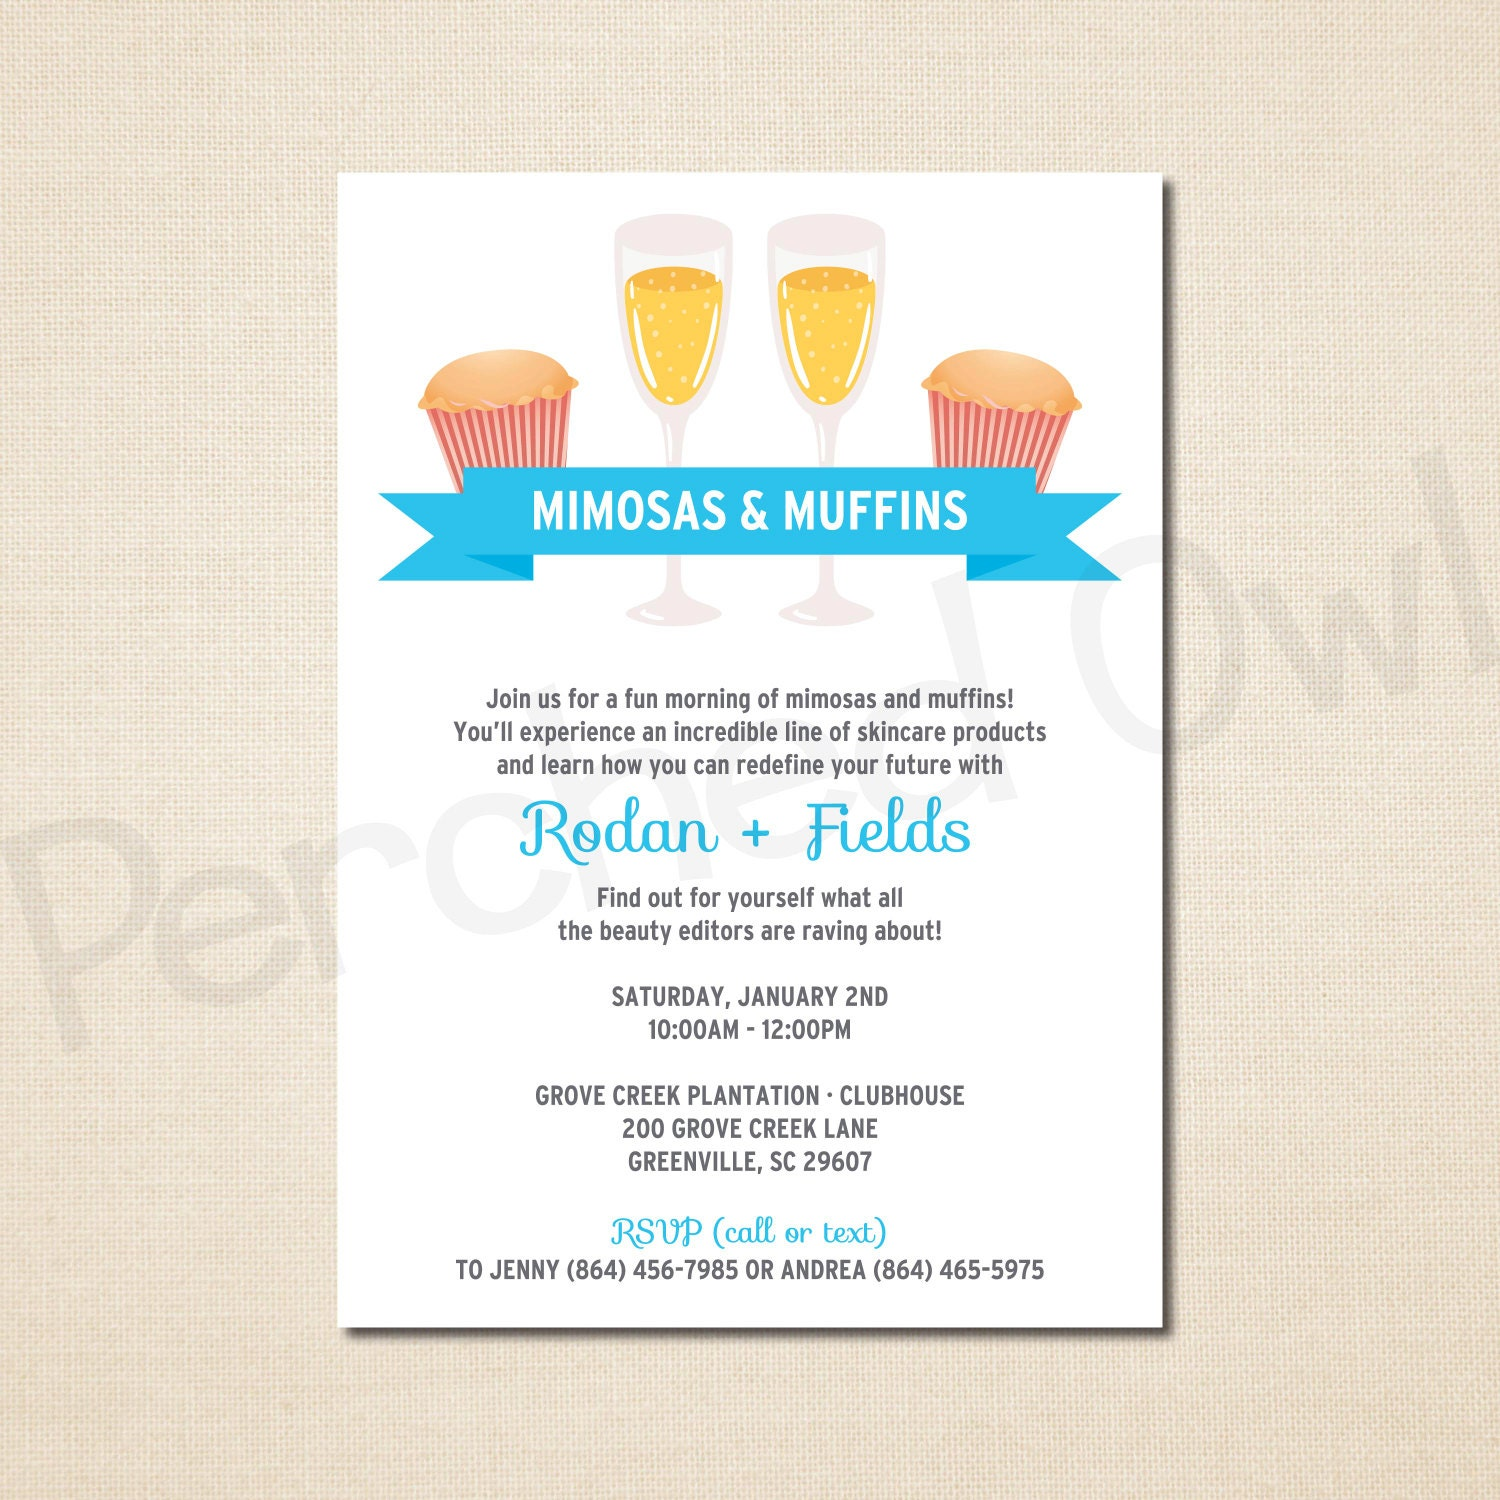 Mimosas muffins invitation direct selling business zoom magicingreecefo Image collections